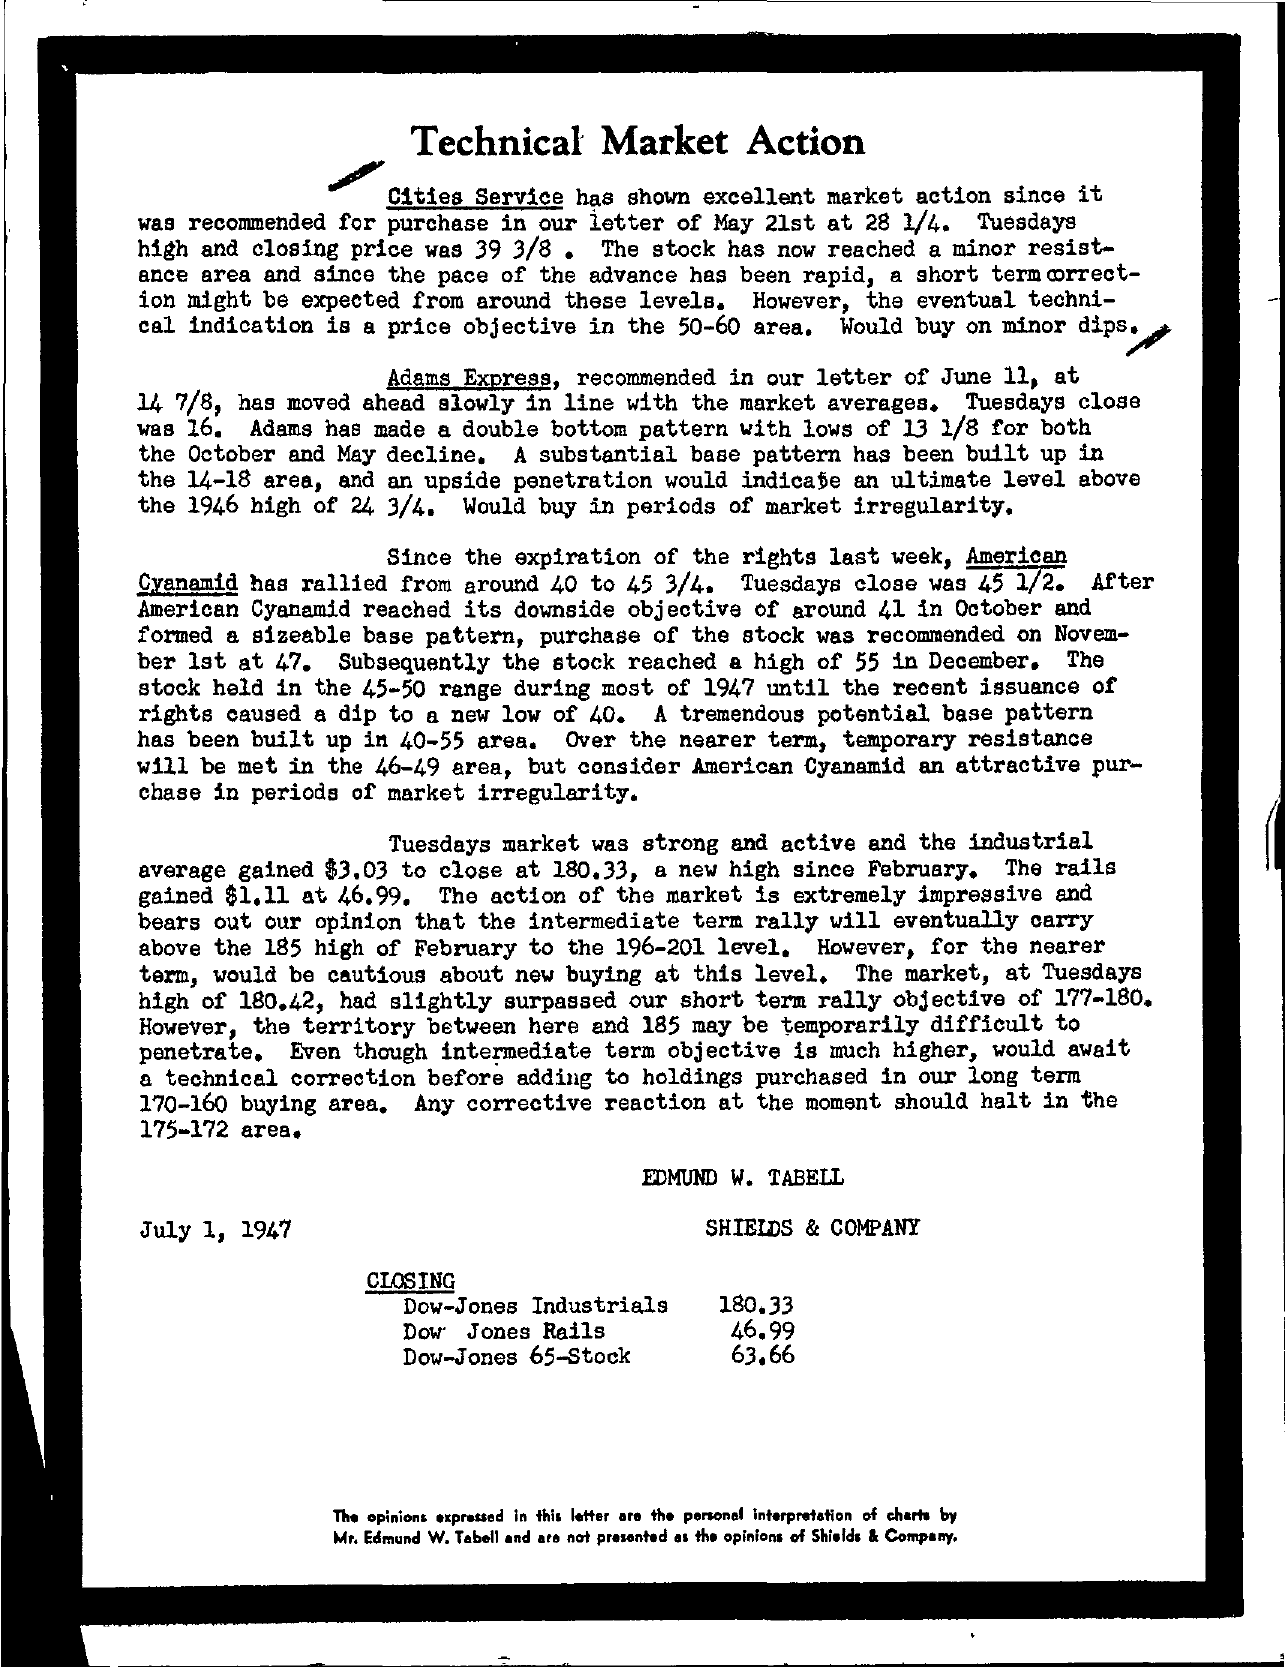 Tabell's Market Letter - July 01, 1947